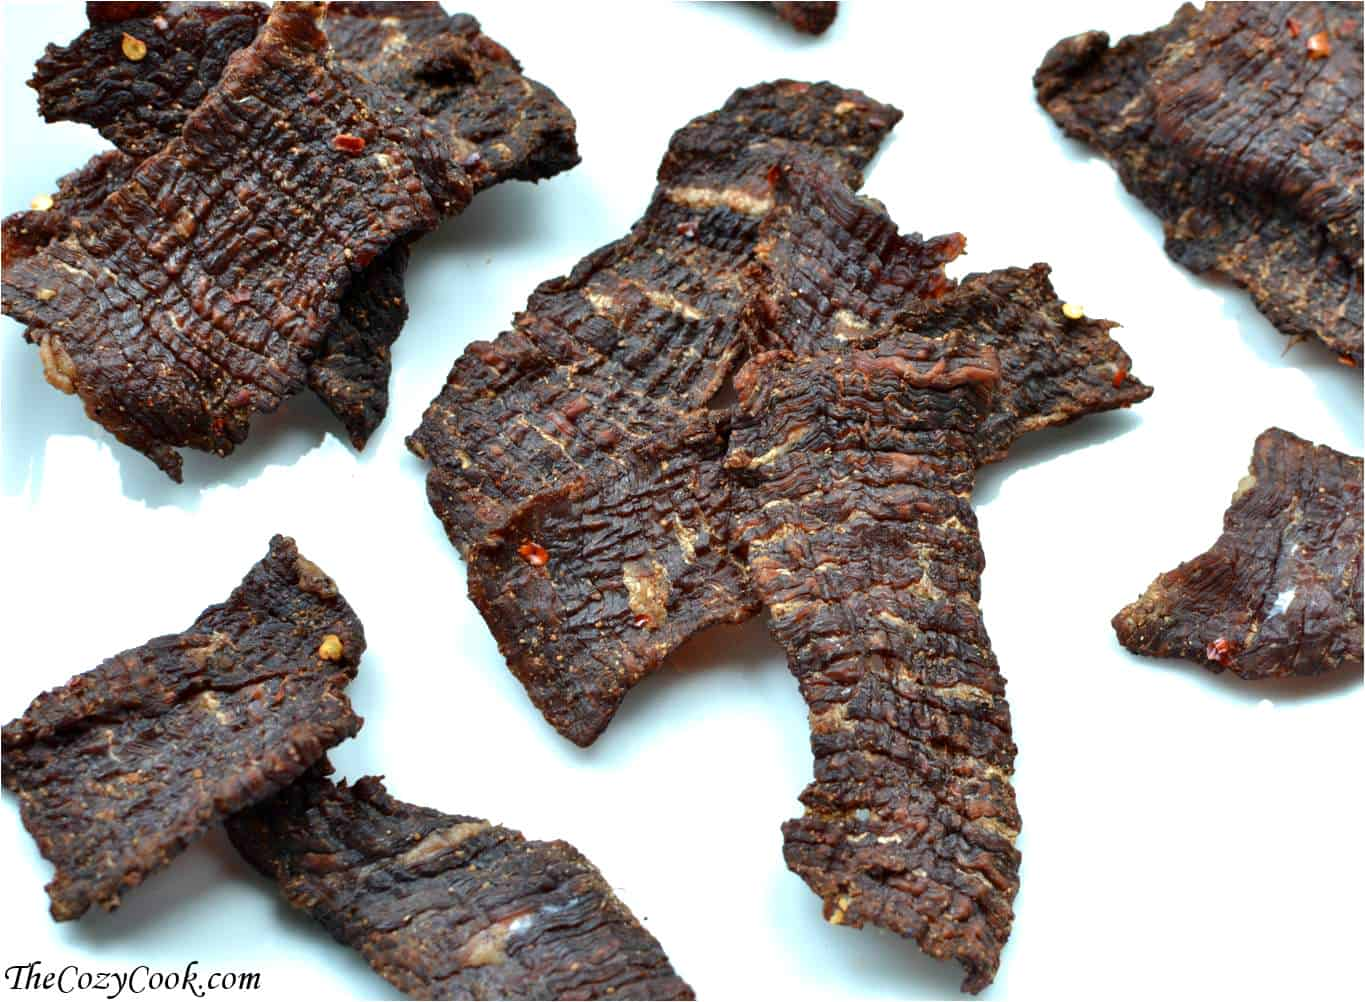 Beef Jerky - homemade style - The Cozy Cook